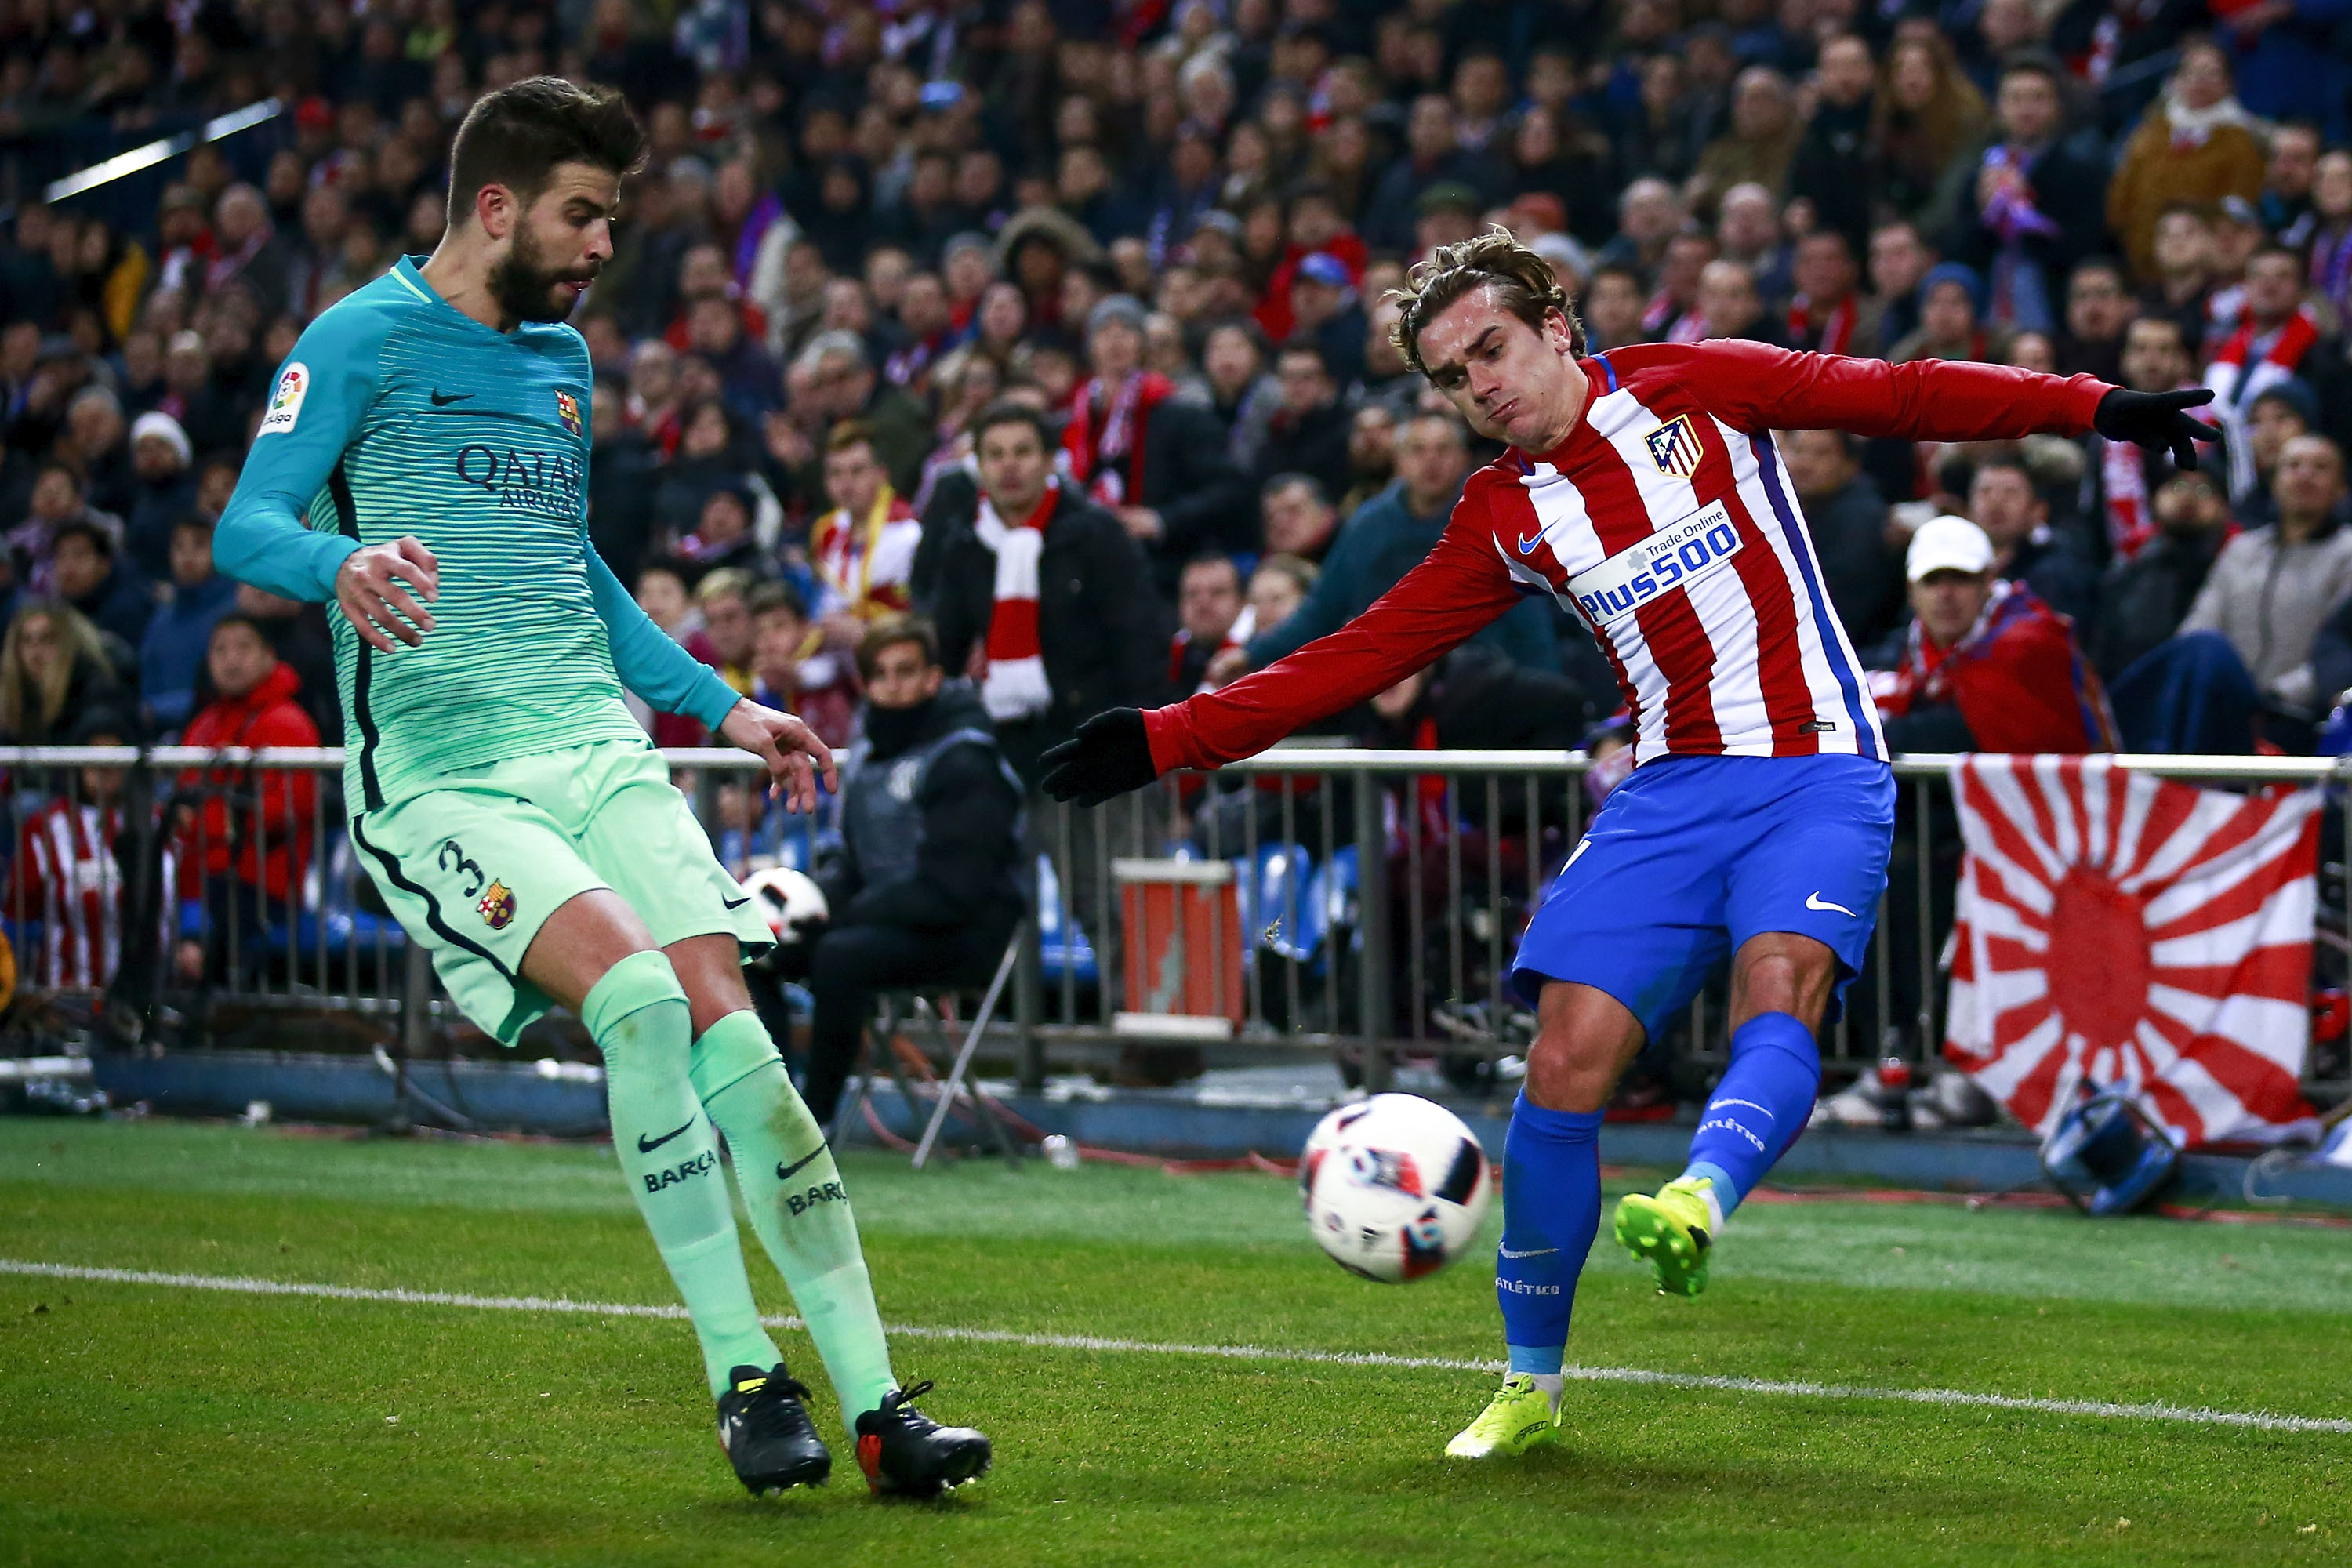 Antoine Griezmann (R) of Atletico Madrid in action against Barcelona (Gonzalo Arroyo Moreno/Getty Images)